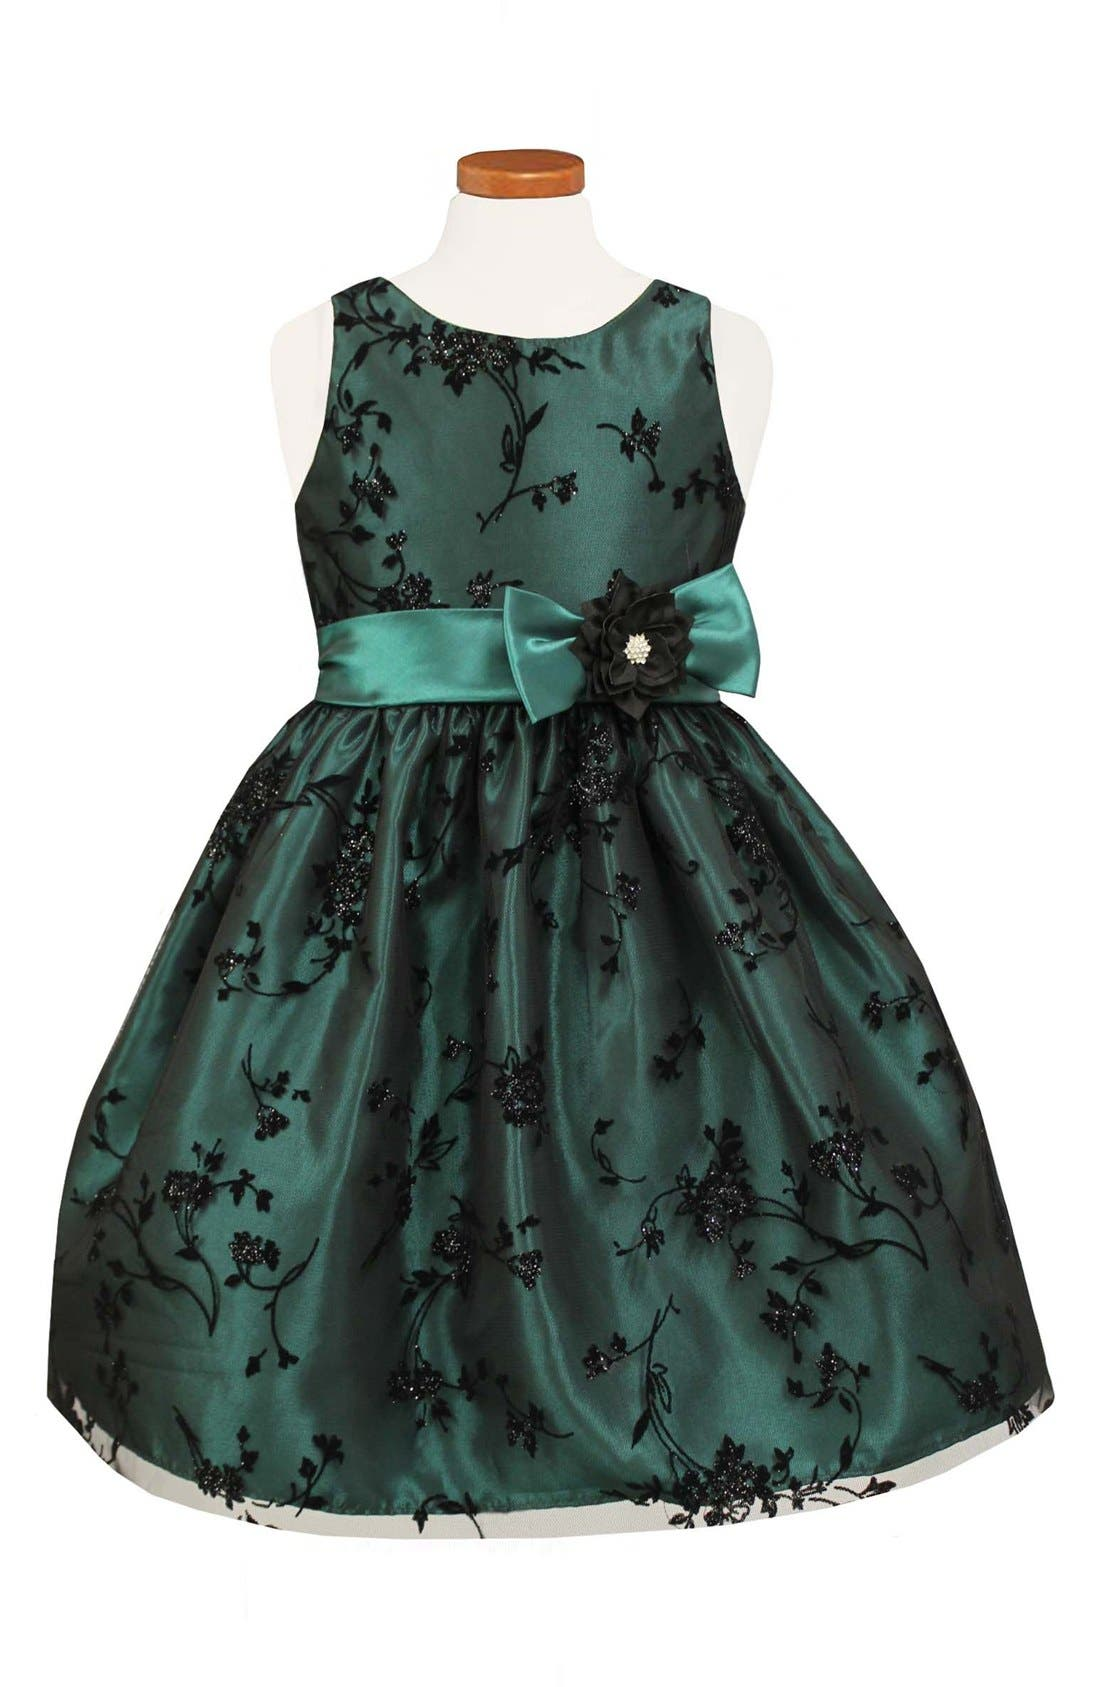 Alternate Image 1 Selected - Sorbet Taffeta Fit & Flare Dress (Toddler Girls, Little Girls & Big Girls)